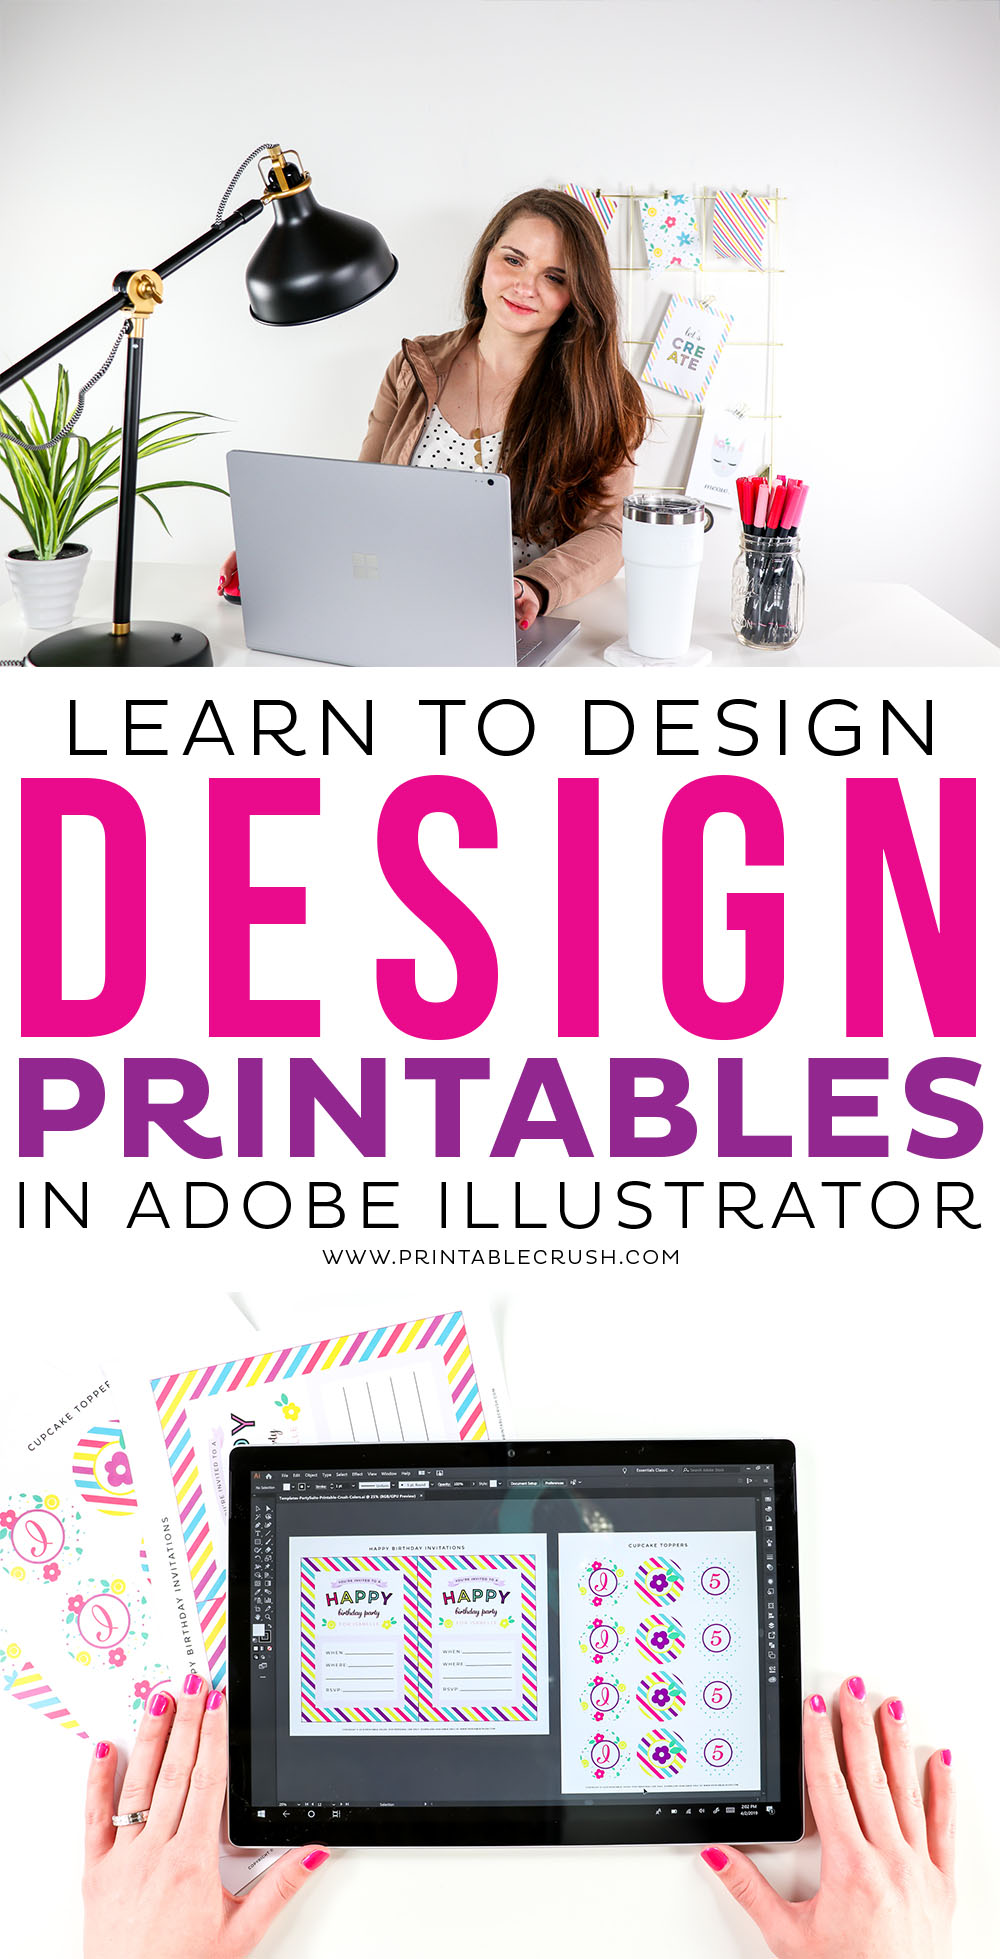 Learn to Design Printables in Adobe Illustrator - Printable Crush